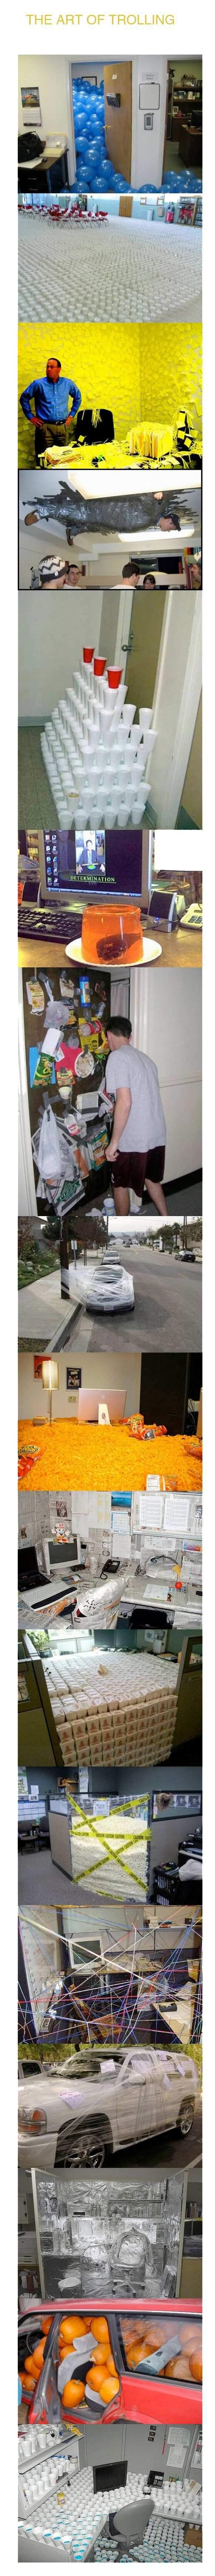 """I didn't know that you could call a prank """"trolling"""" till my friend told me the other day lol xD"""